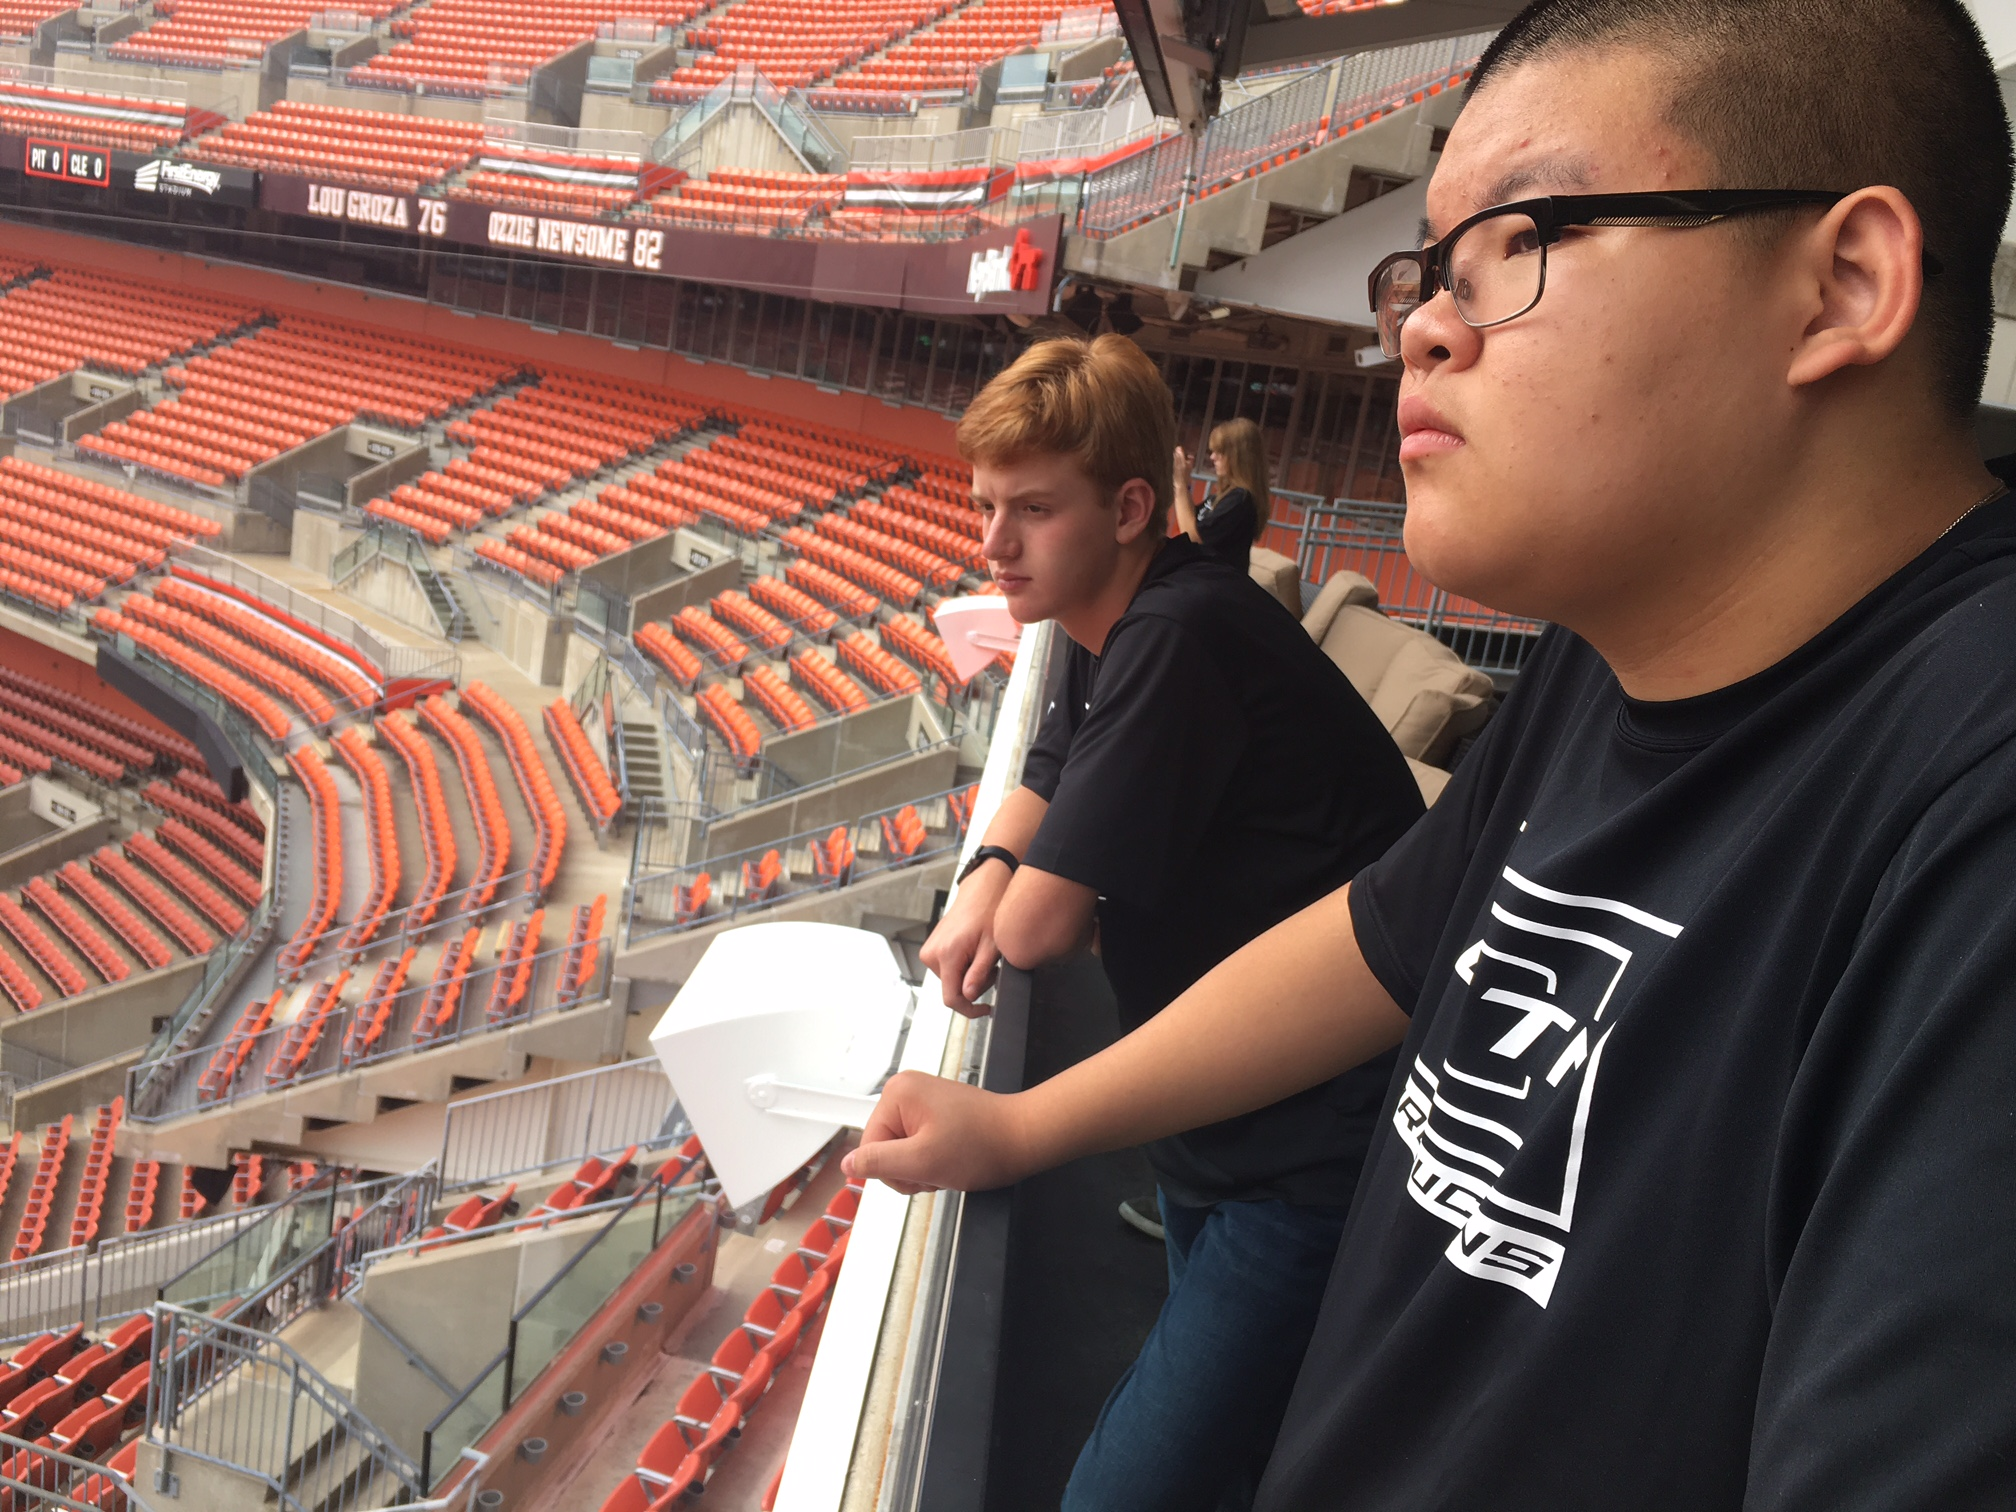 students looking at field from stadium seats